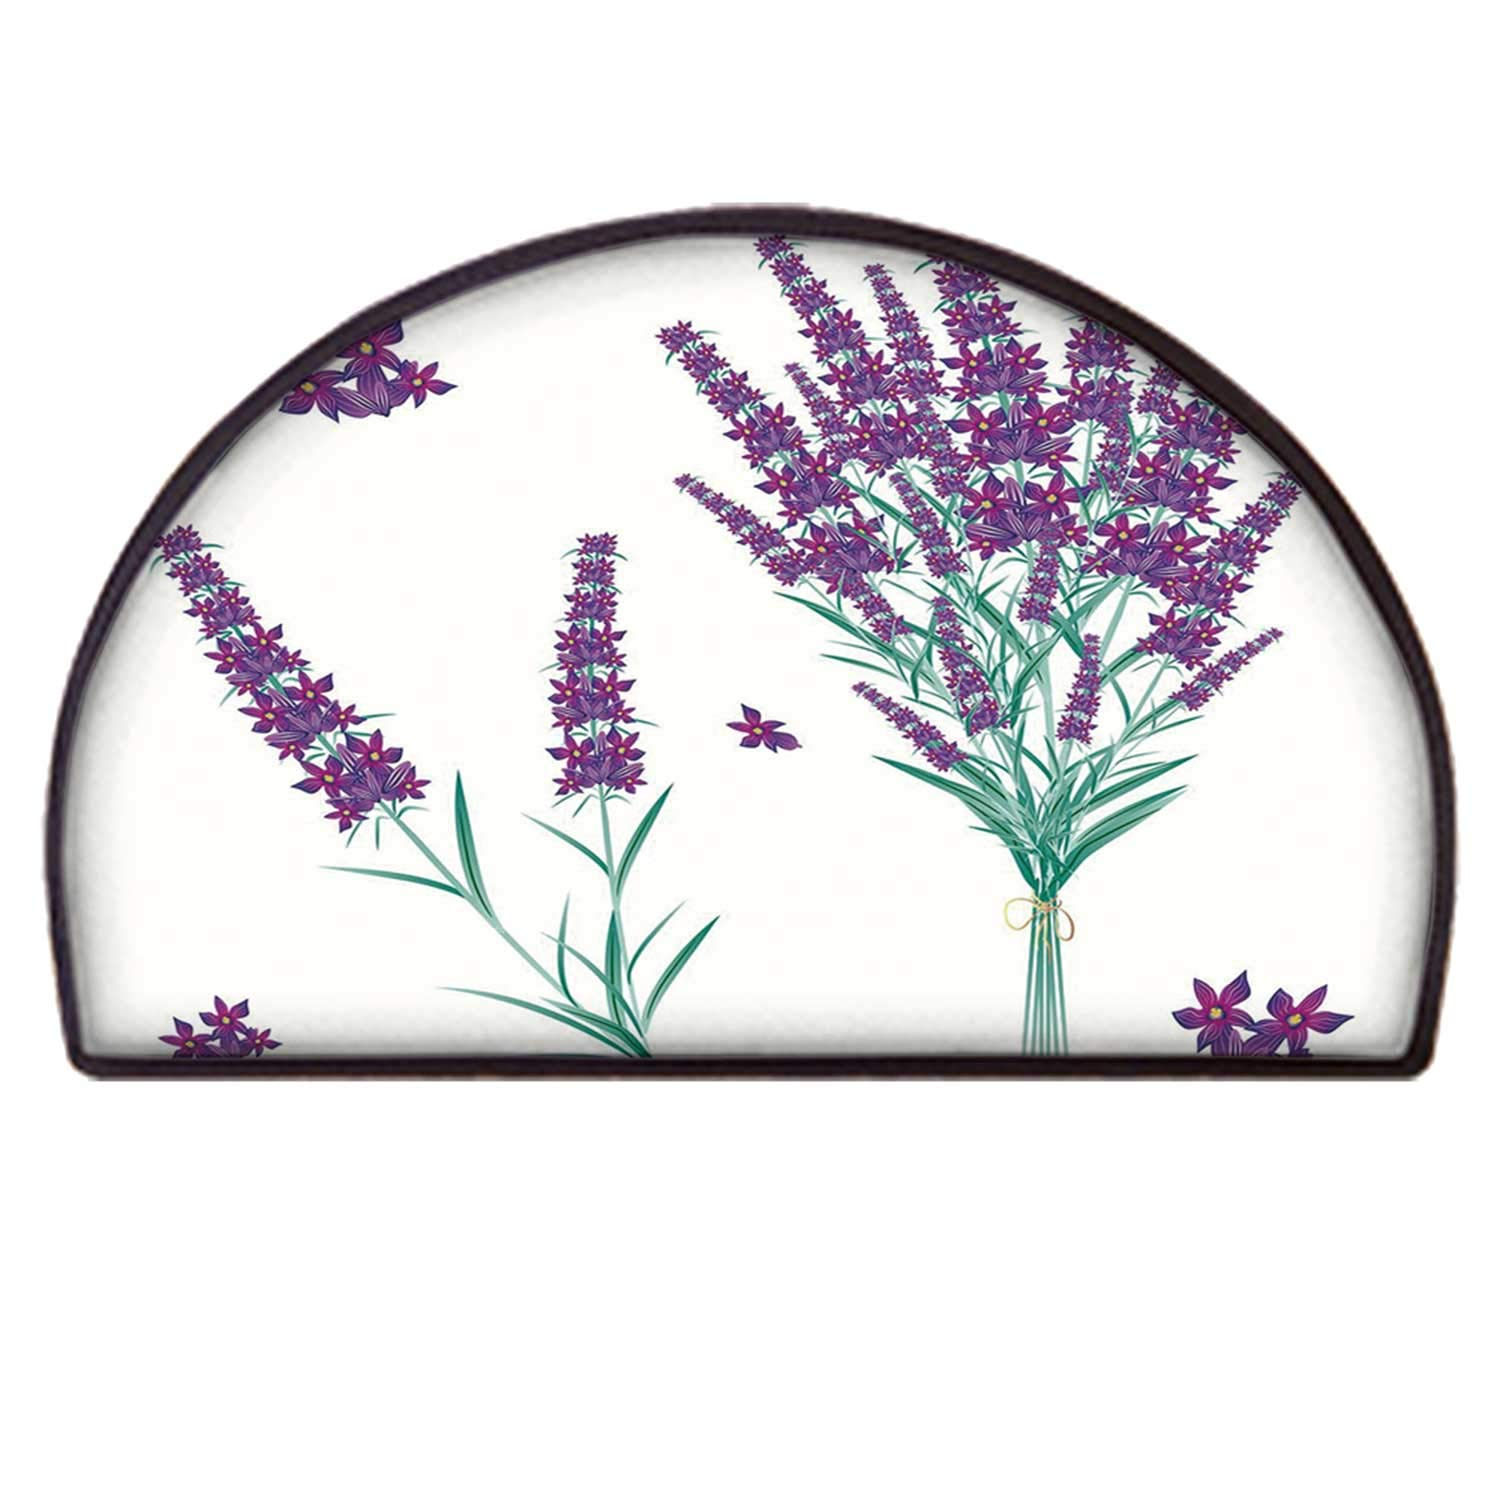 C COABALLA Lavender Non Slip Semicircle Mat,Aromatic Blossoms Bouquet from Provence France Fragrant Herbal Flora Decorative for Indoor,90 x 180cm / 35.43 x 70.86 inch by C COABALLA